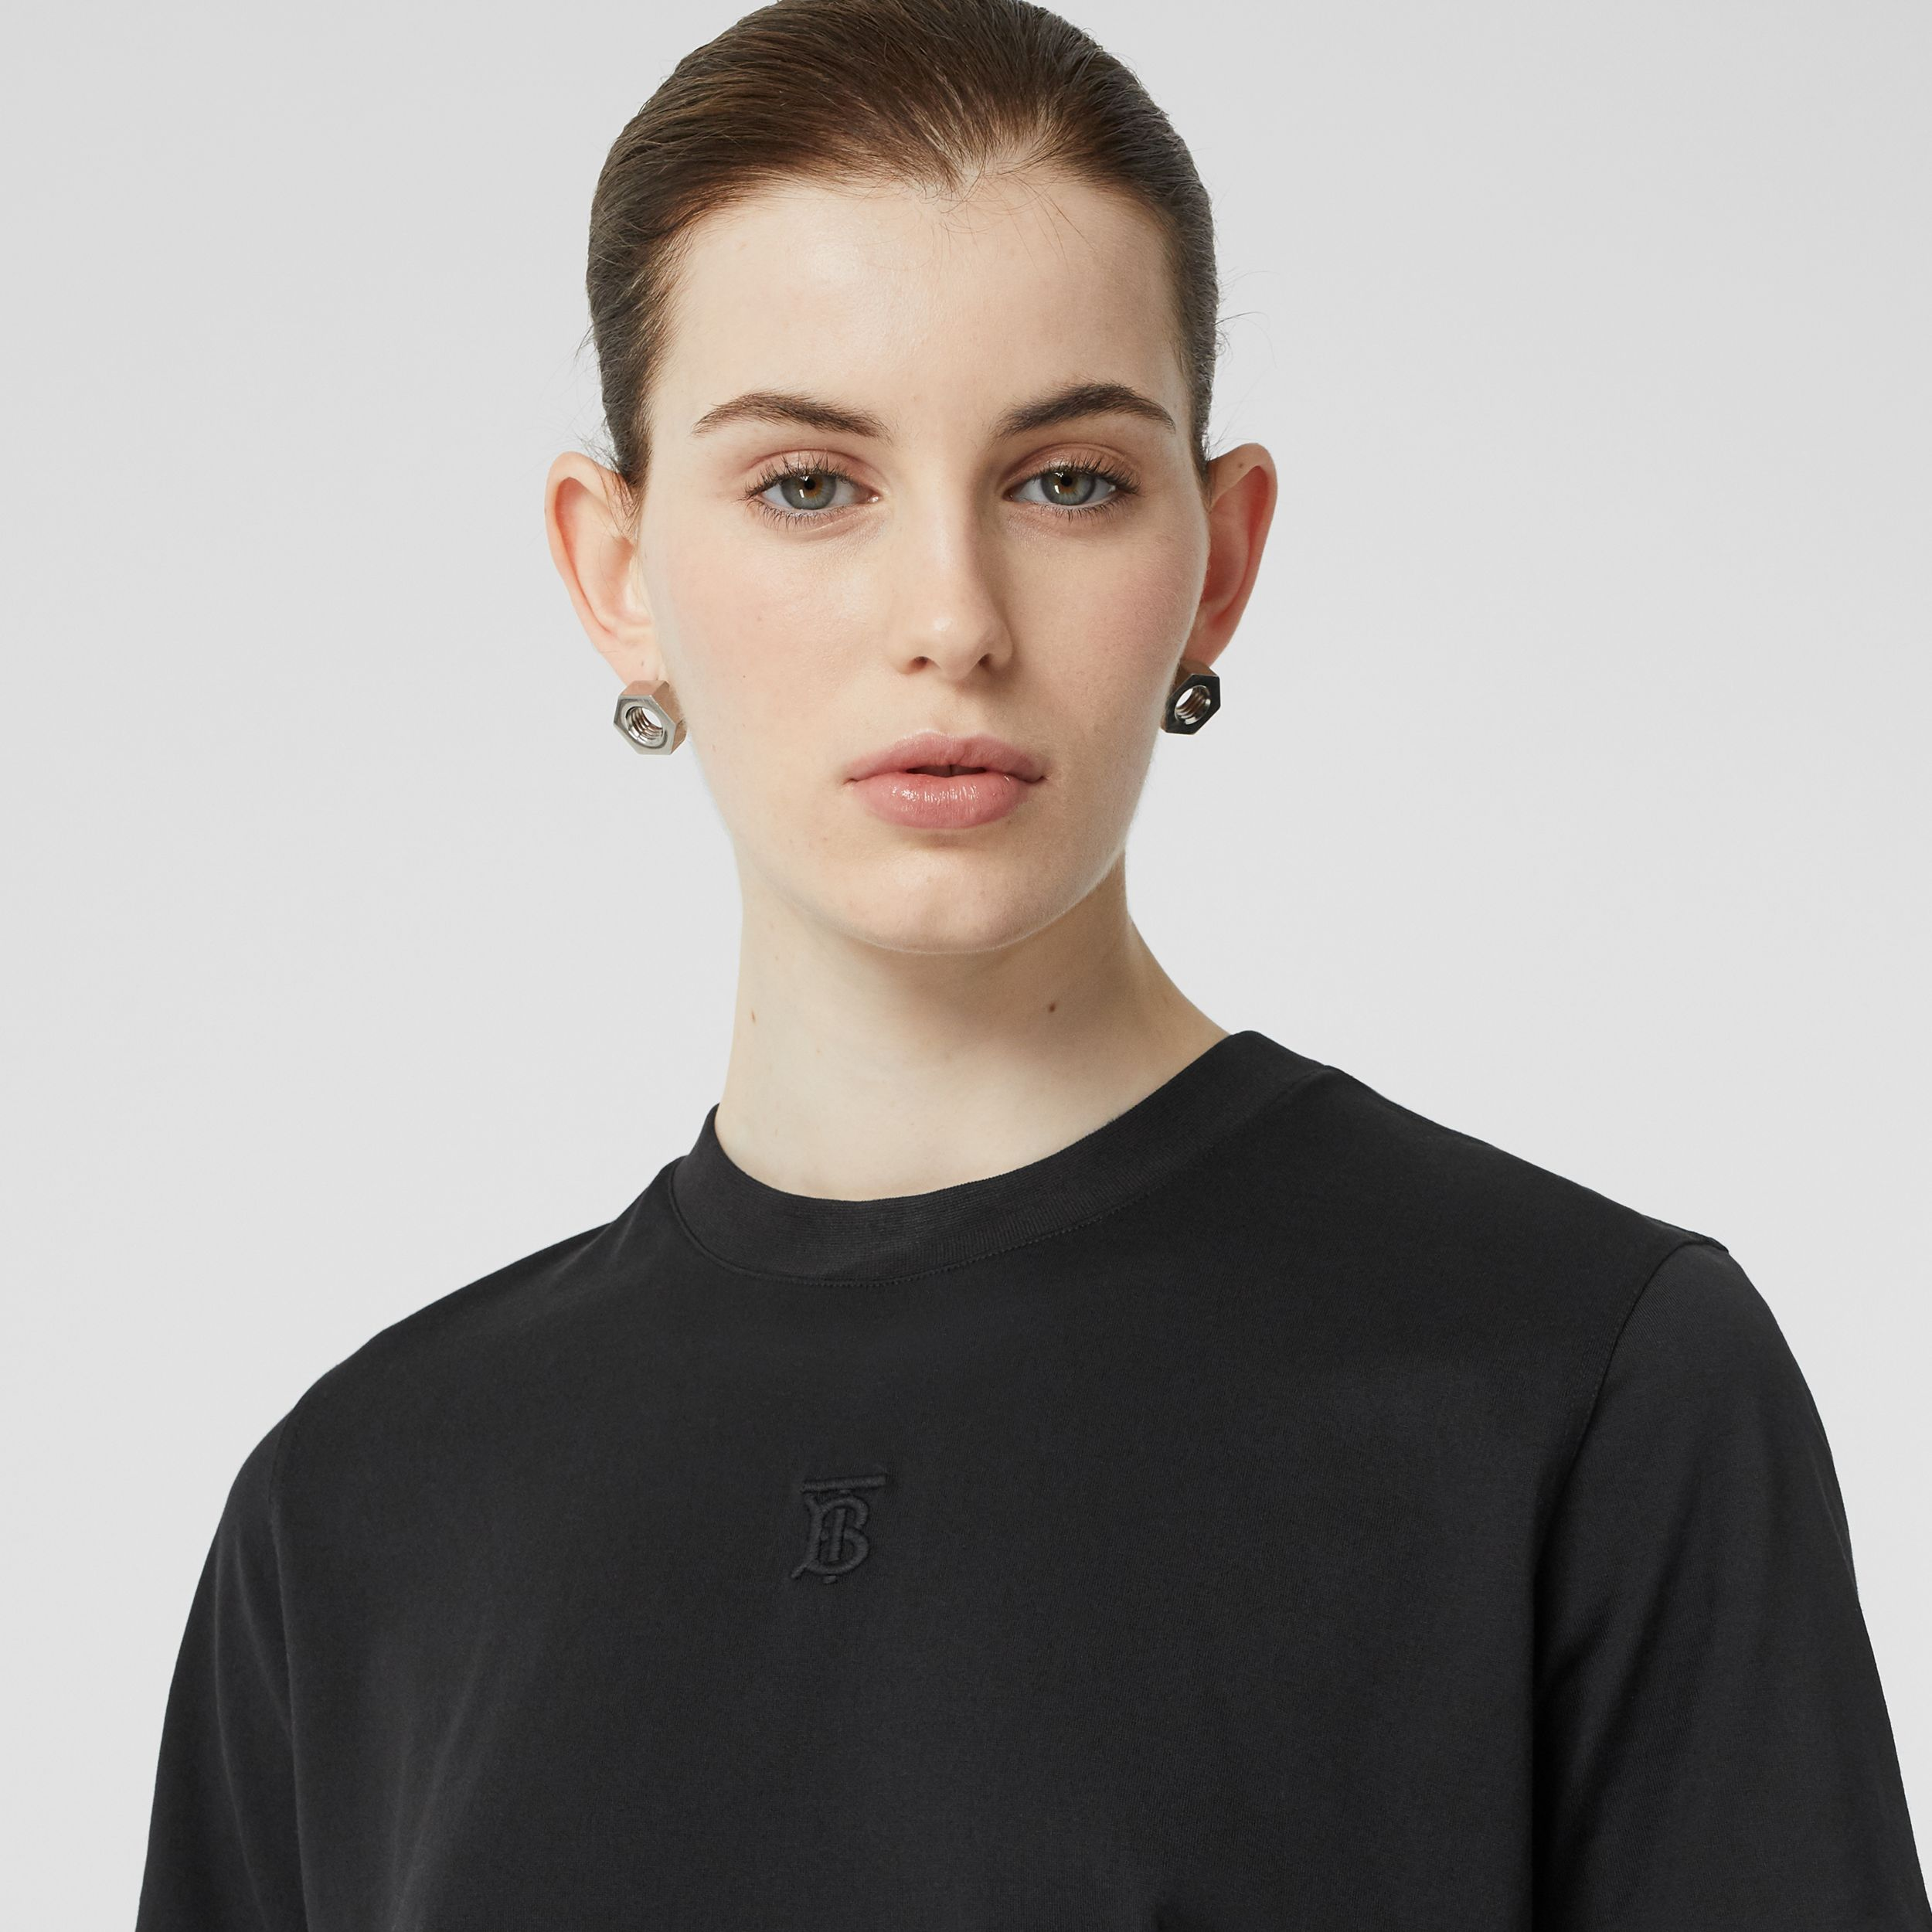 Monogram Motif Cotton T-shirt in Black - Women | Burberry - 2